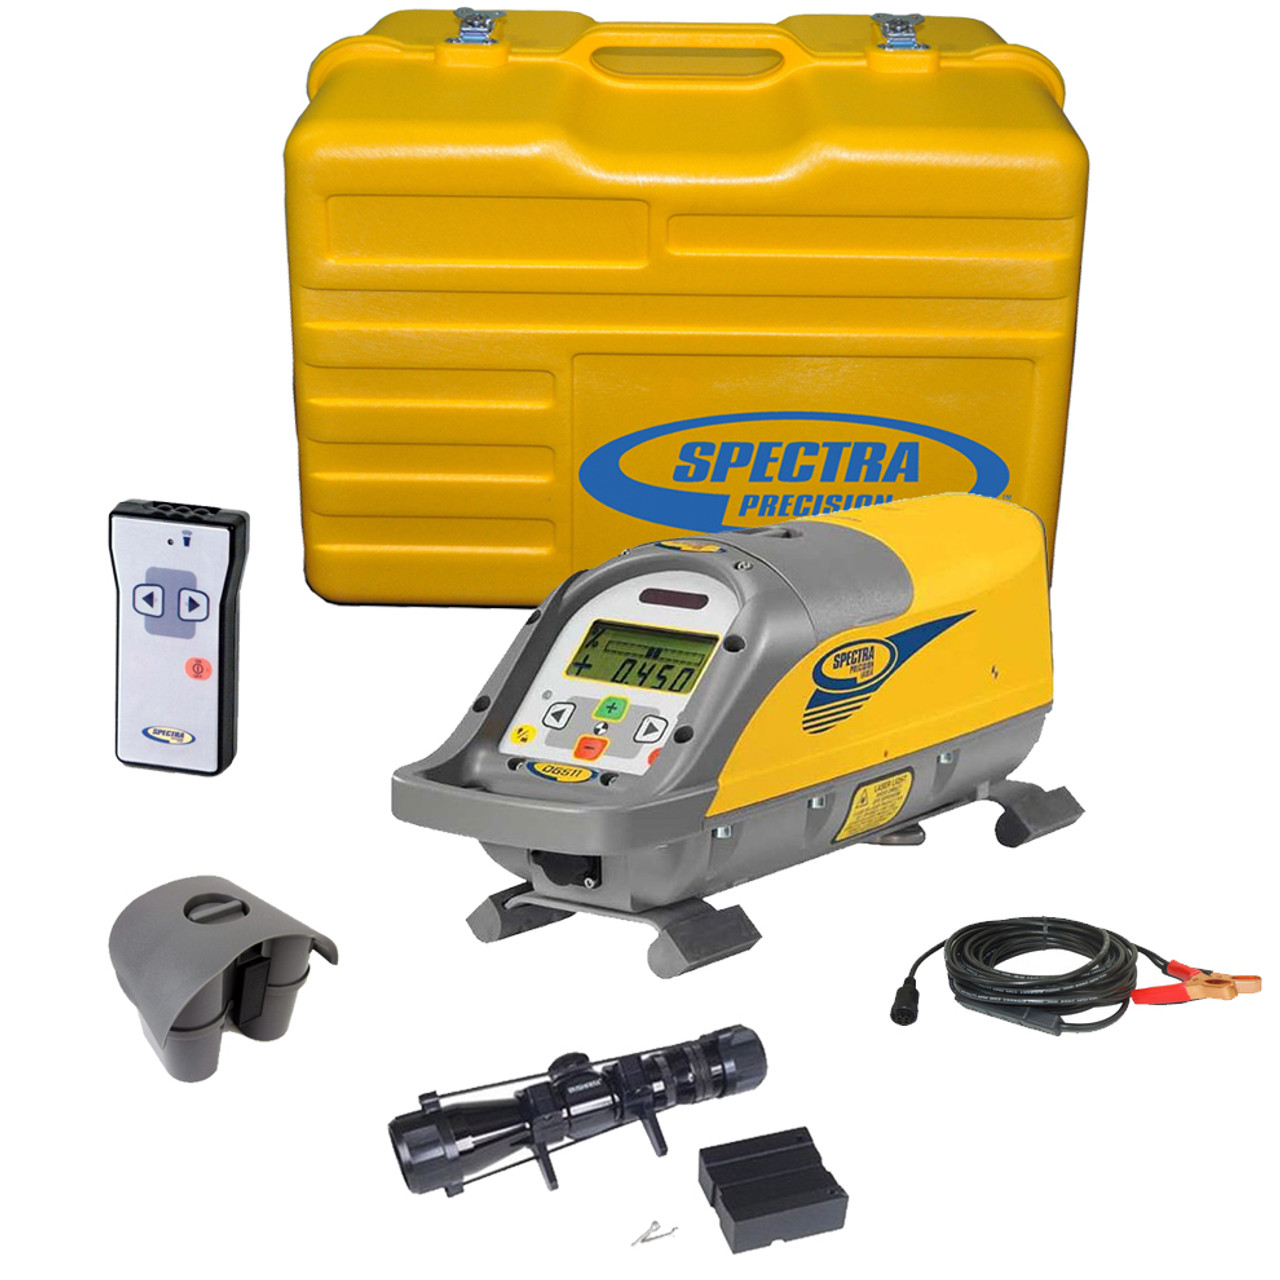 Spectra DG511-13 Pipe Laser with 1233 Scope, P23 NiMH Battery Rechargeable  Battery Pack